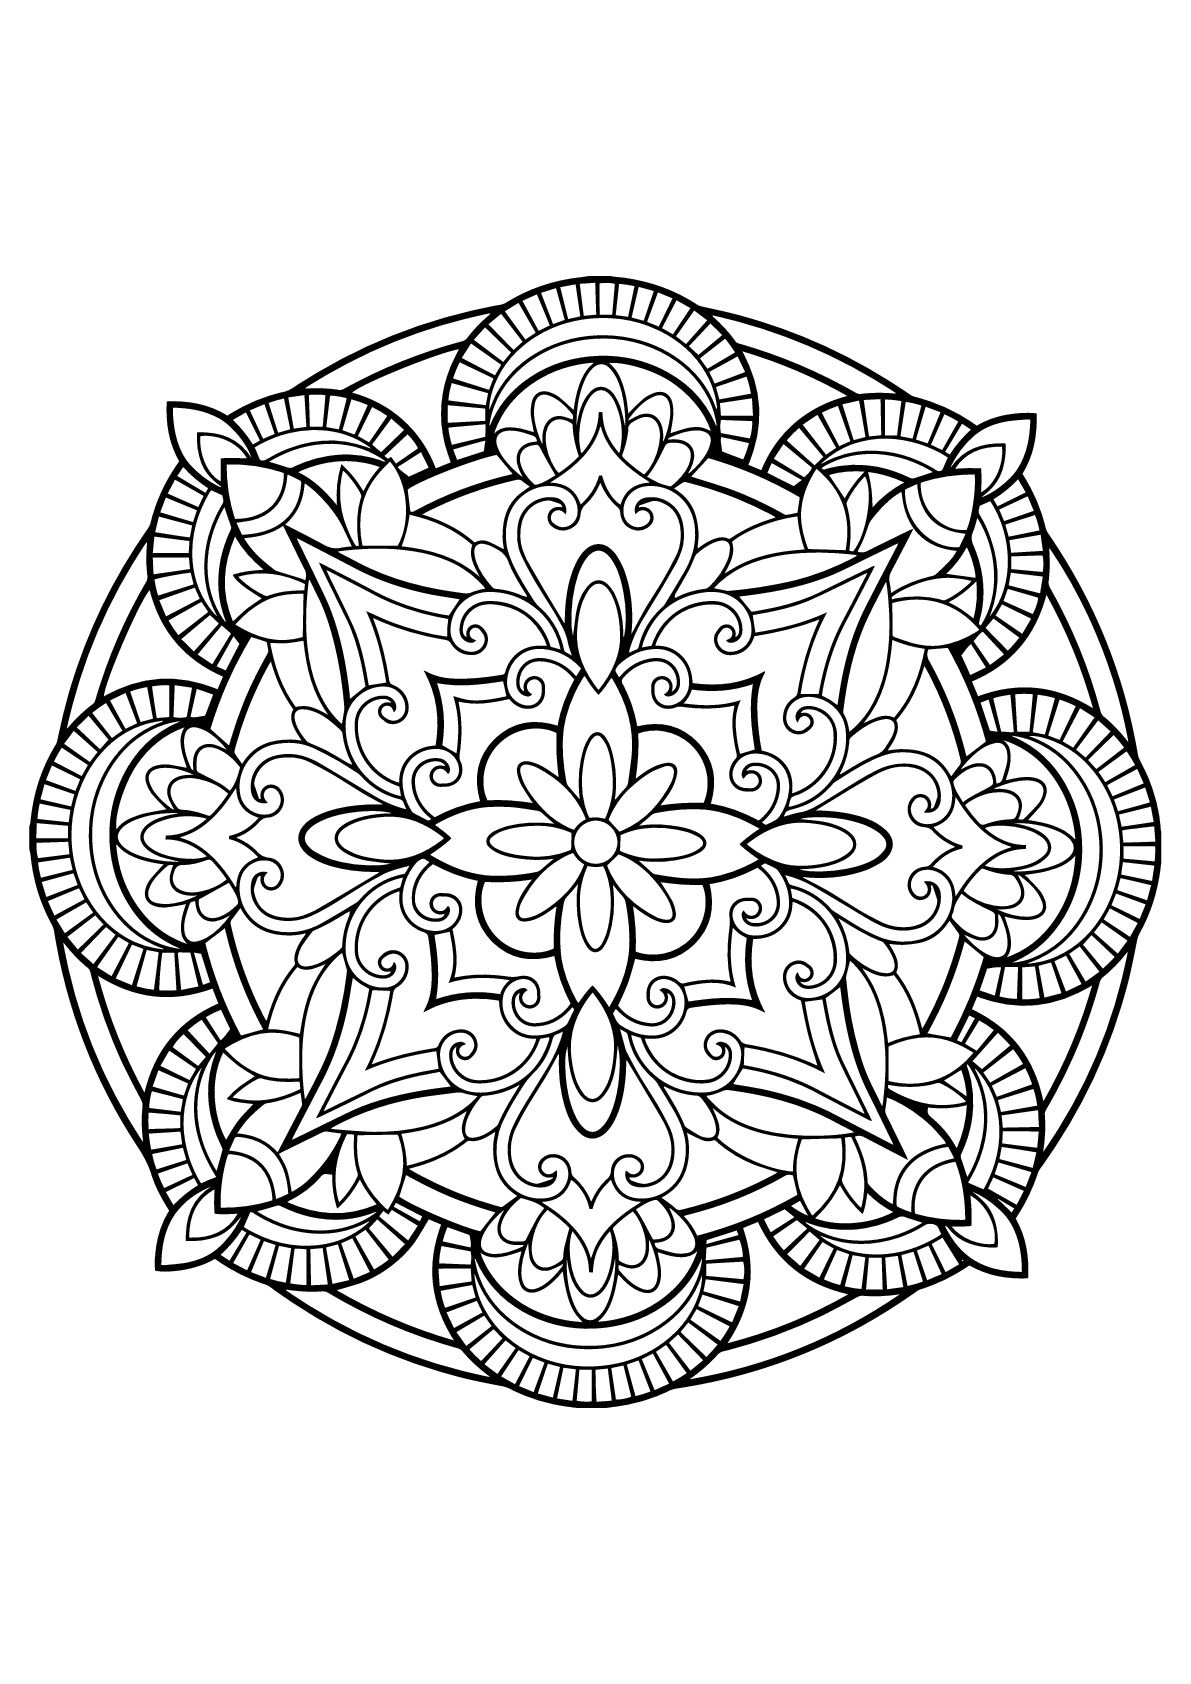 Here Are Difficult Mandalas Coloring Pages For Adults To Print For Free Mandala Is A Sanskrit Wor Space Coloring Pages Mandala Coloring Mandala Coloring Pages